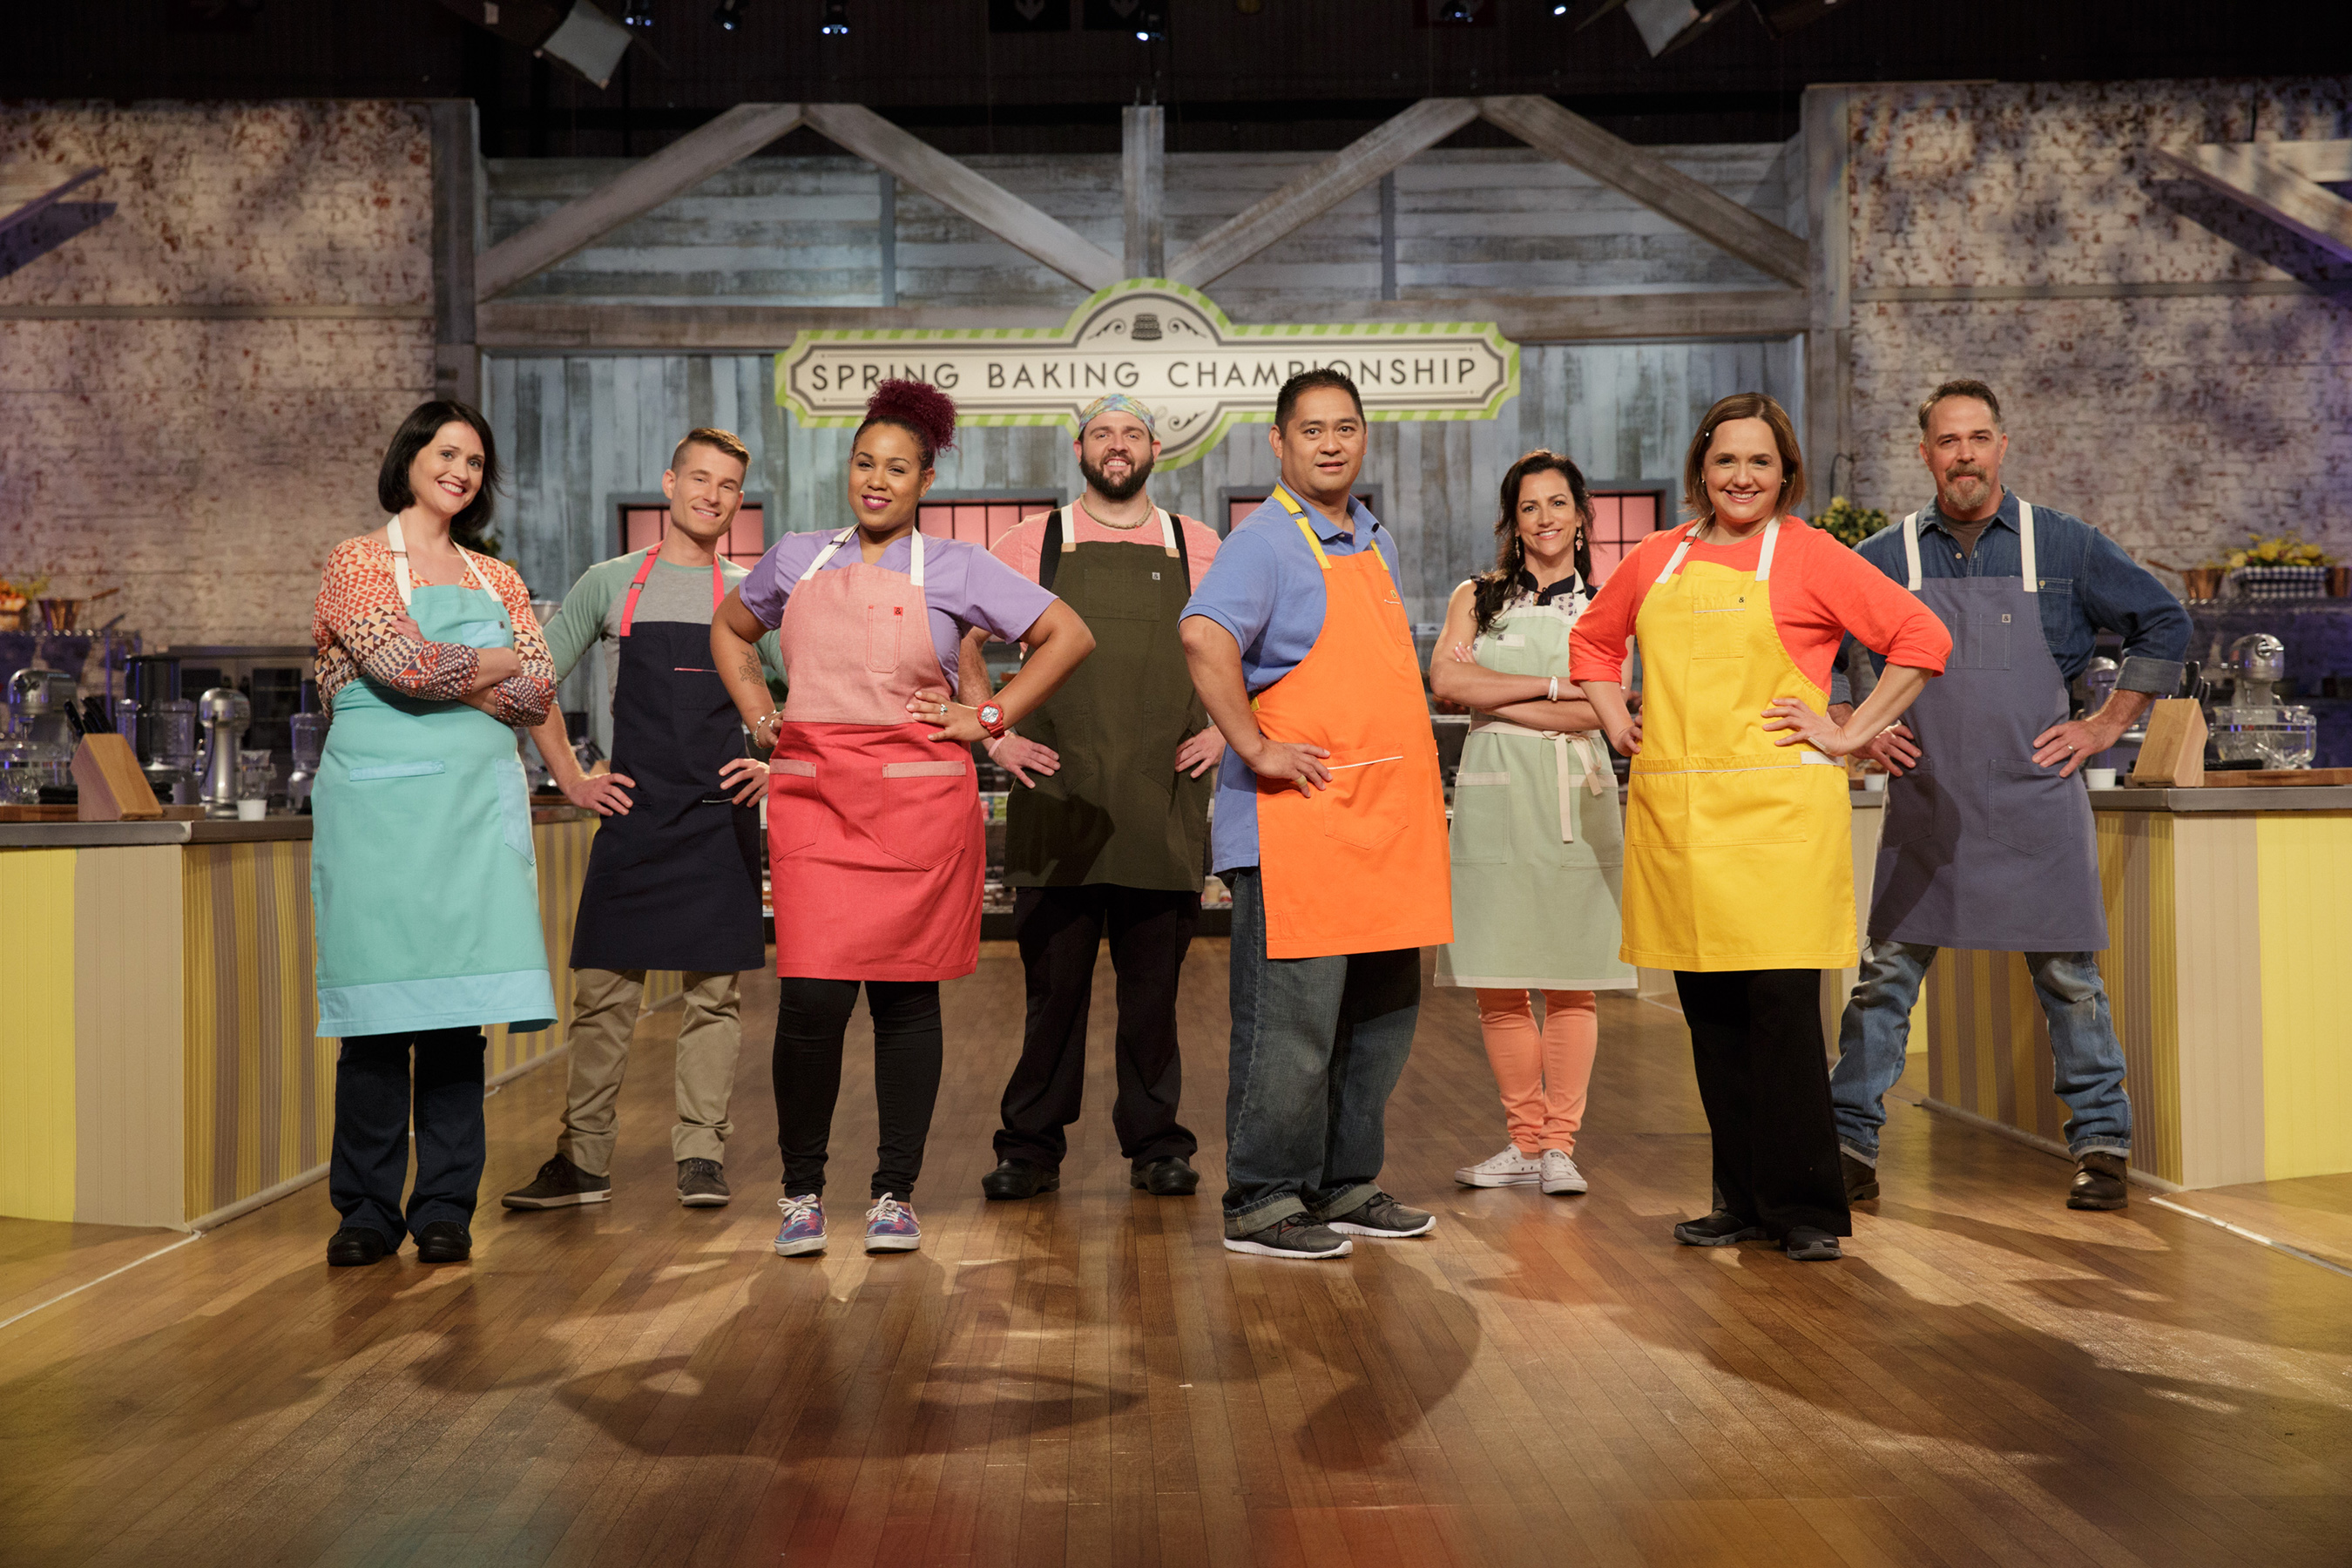 The Contestants of Food Network's Spring Baking Championship